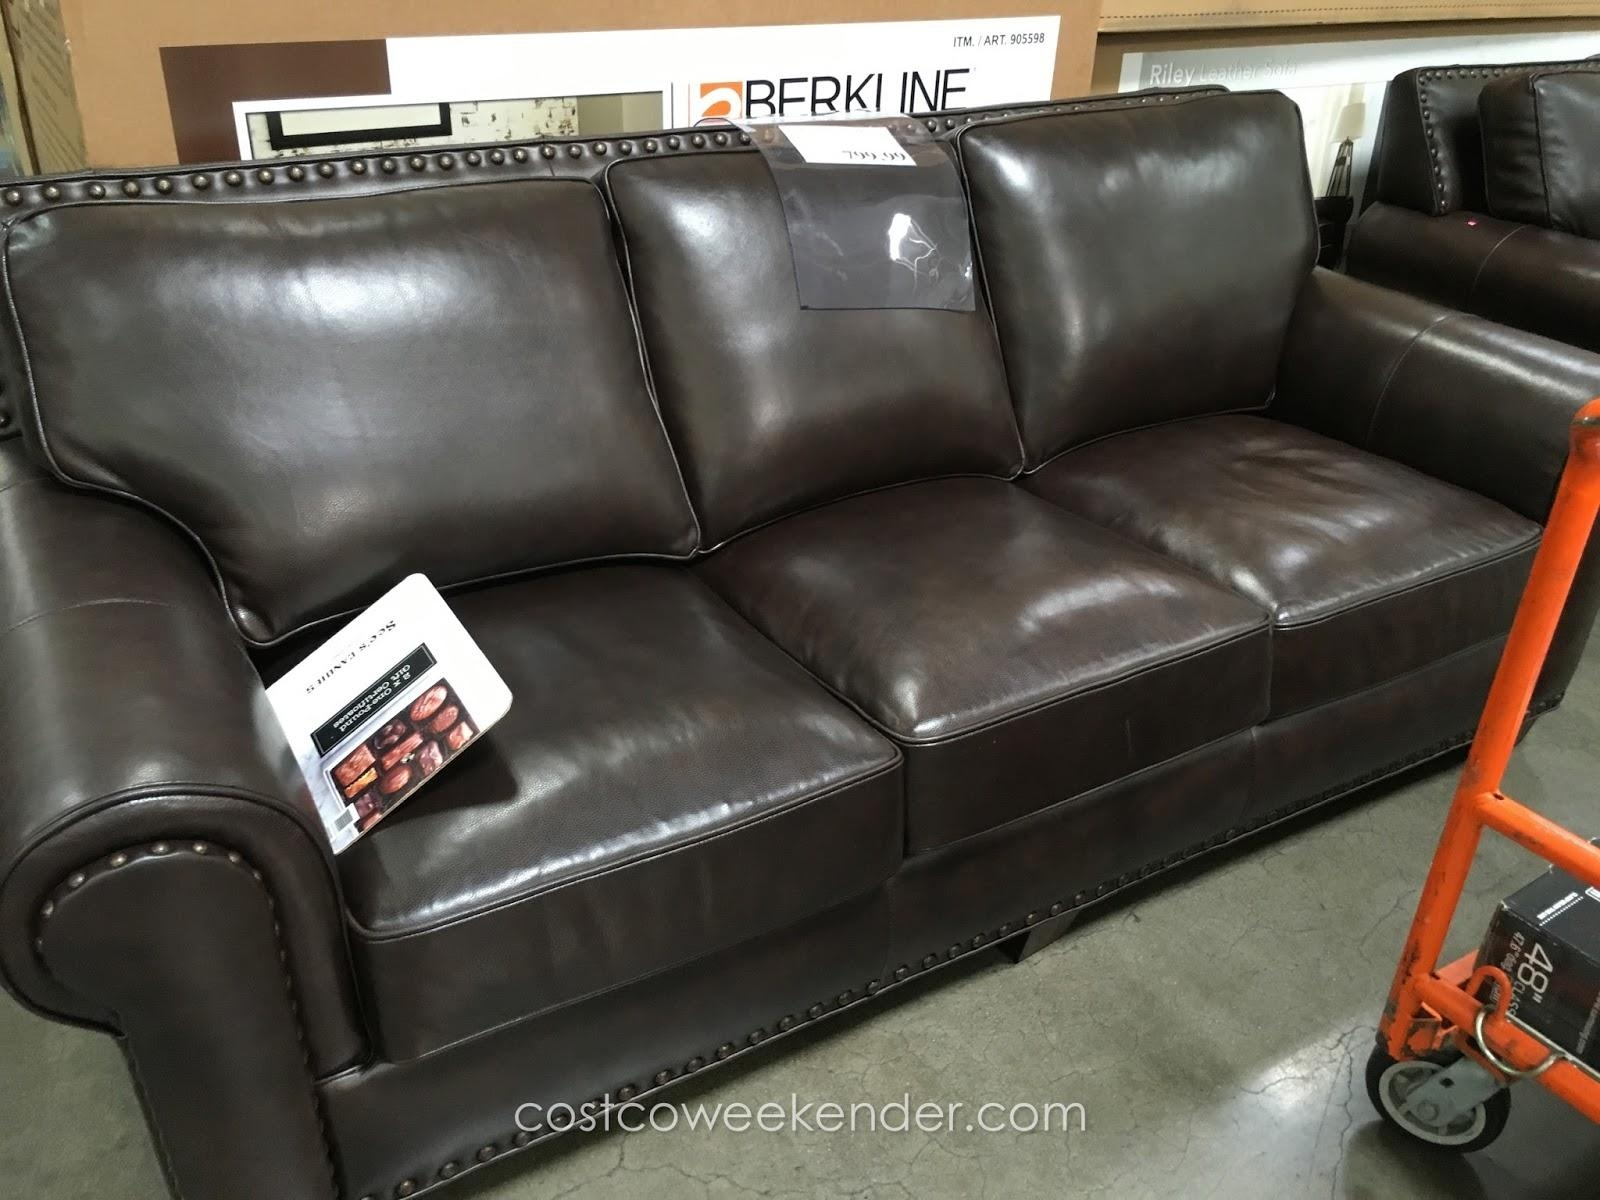 Furniture & Sofa: Enjoy Your Holiday With Costco Home Theater Throughout Berkline Reclining Sofas (Image 4 of 20)